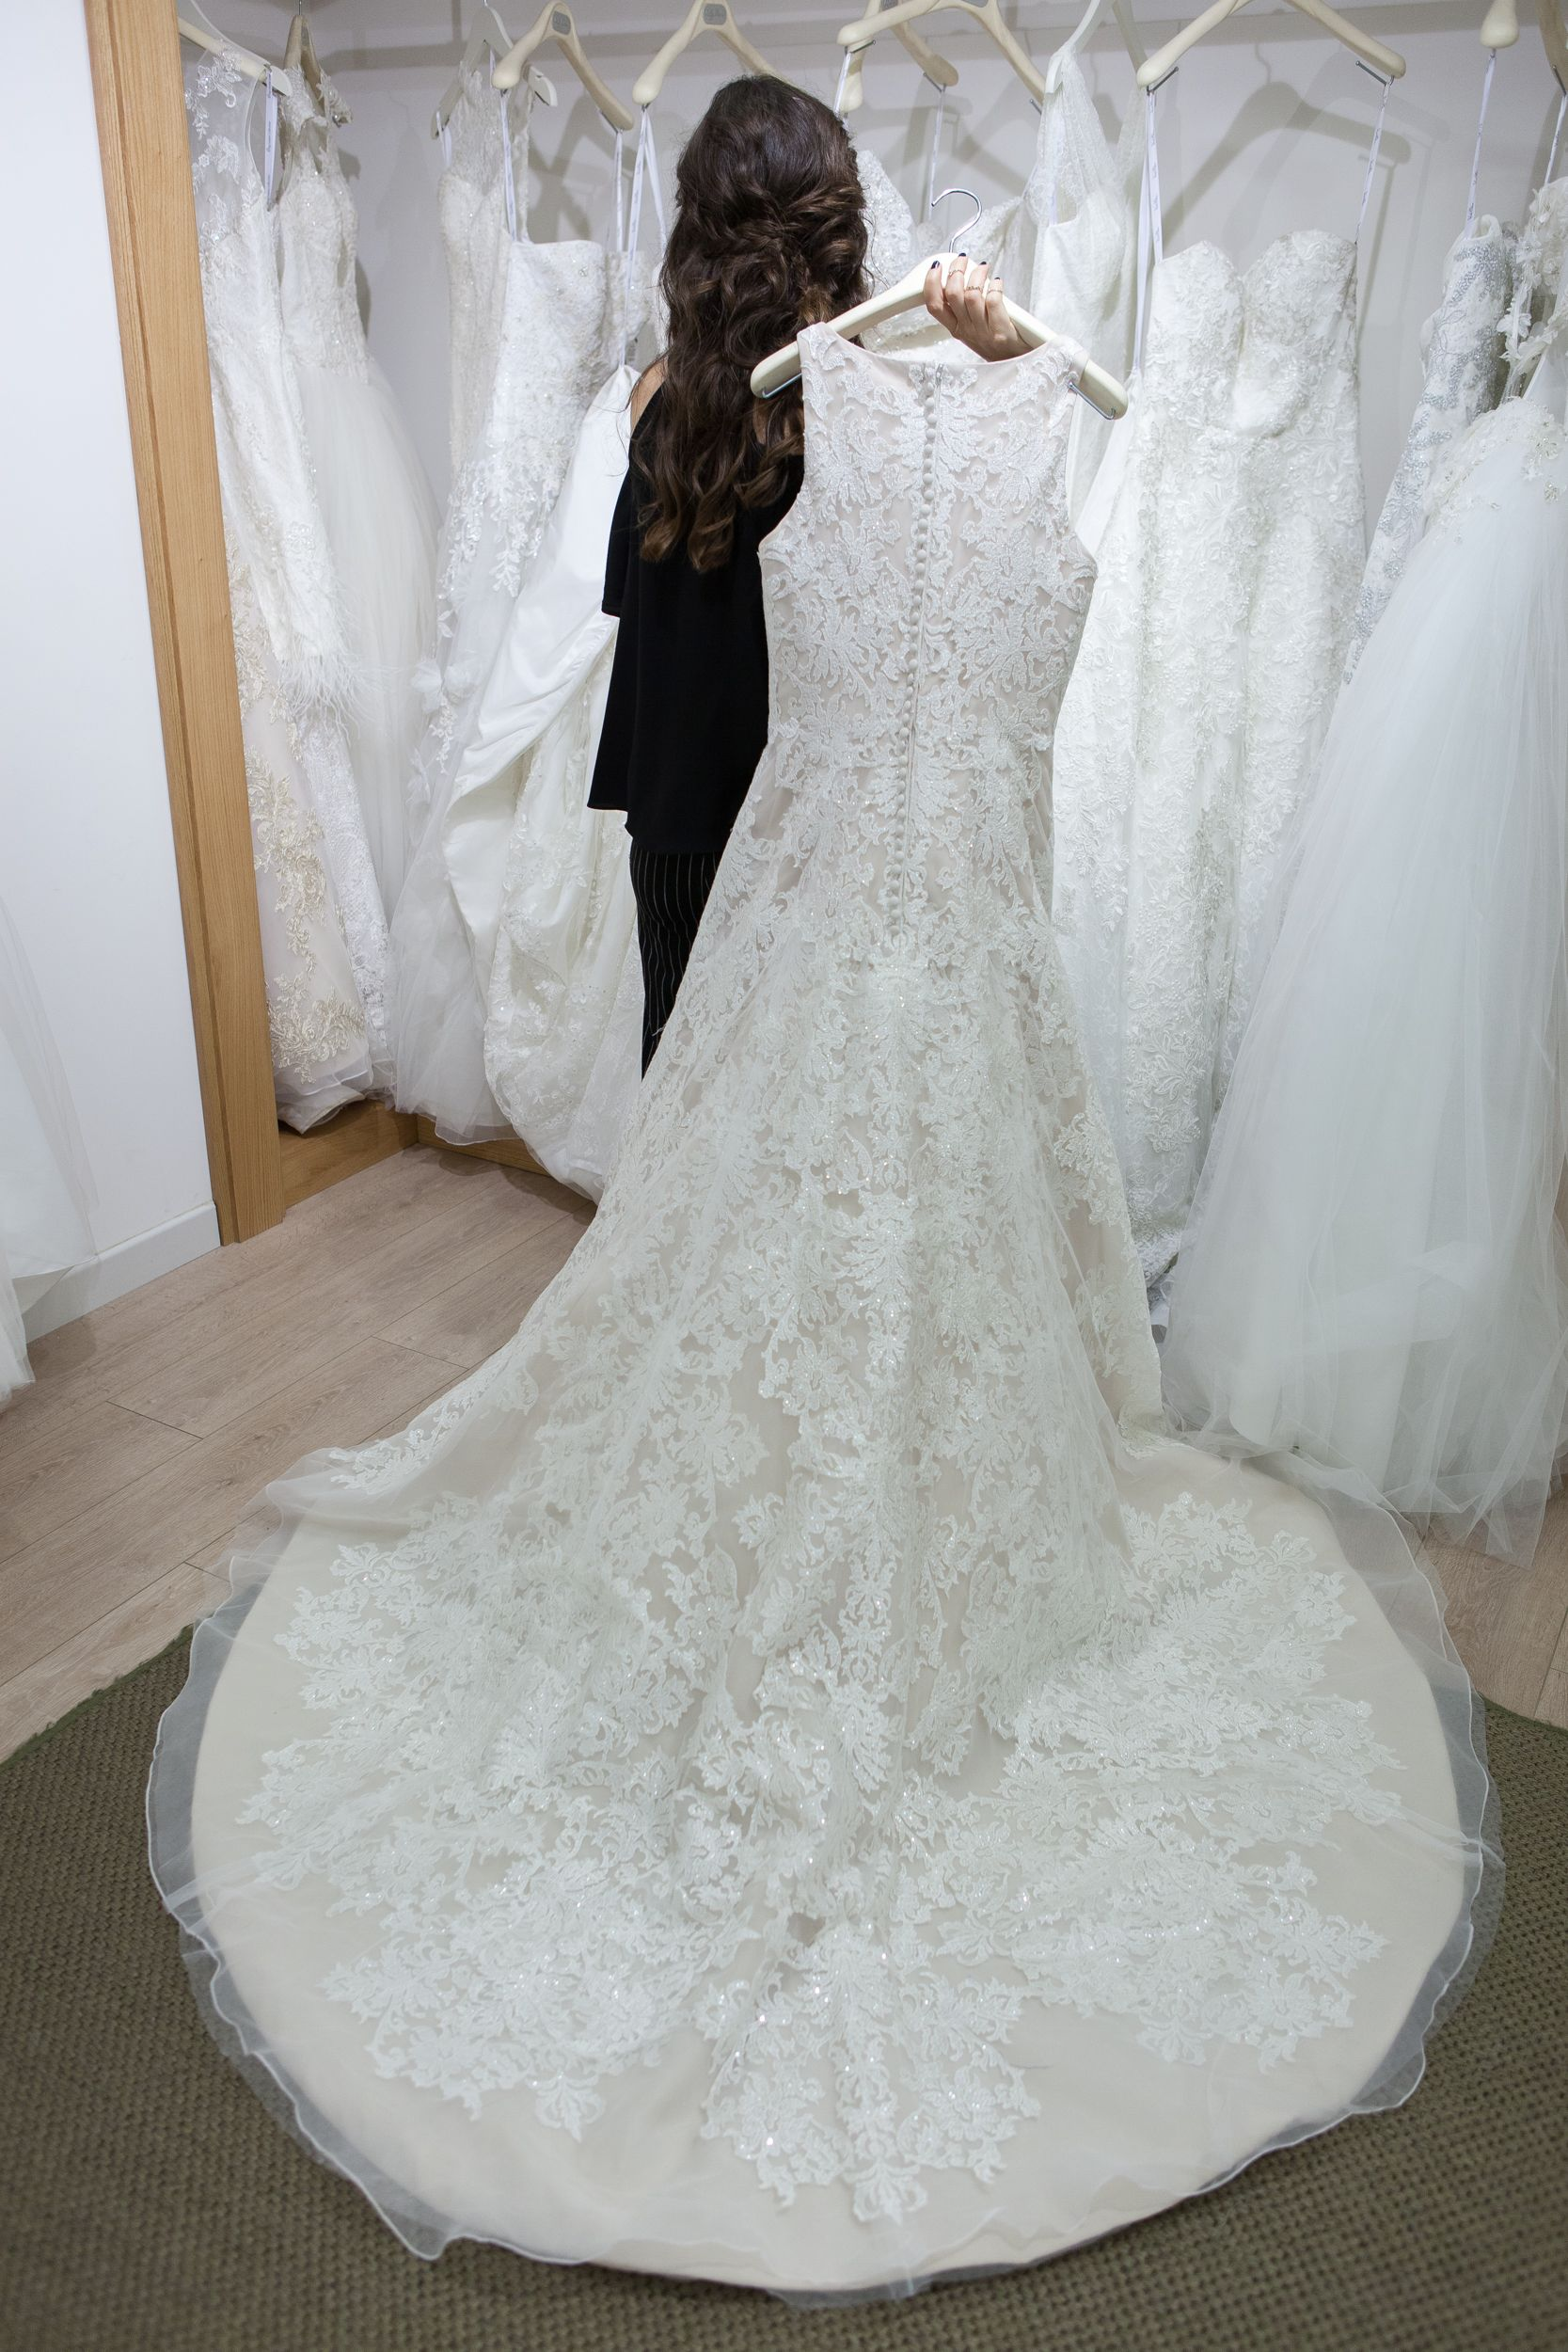 billur saatci, off ne giysem, wedding, wedding dress, oleg cassini, bride, bridal post